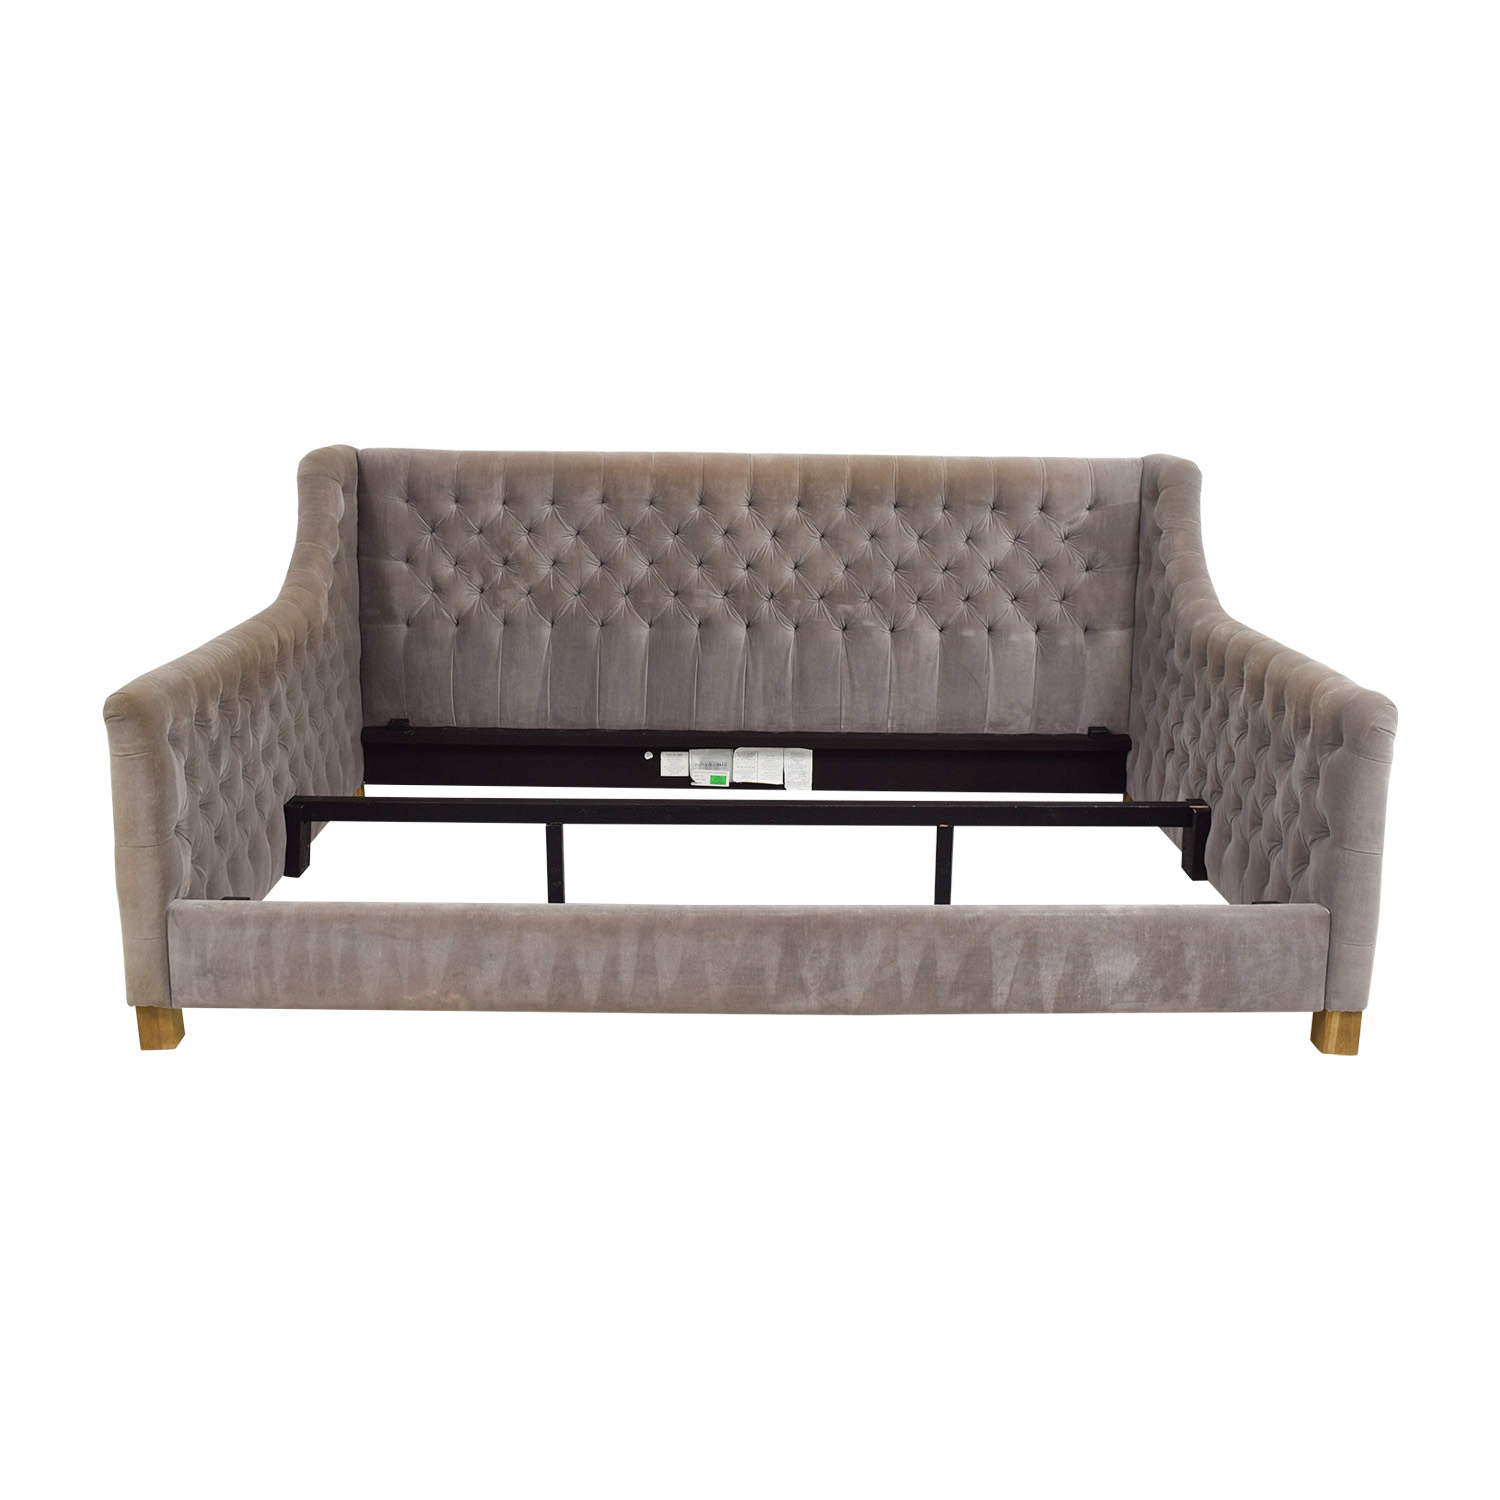 Restoration Hardware Devyn Fog Tufted Full Daybed sale